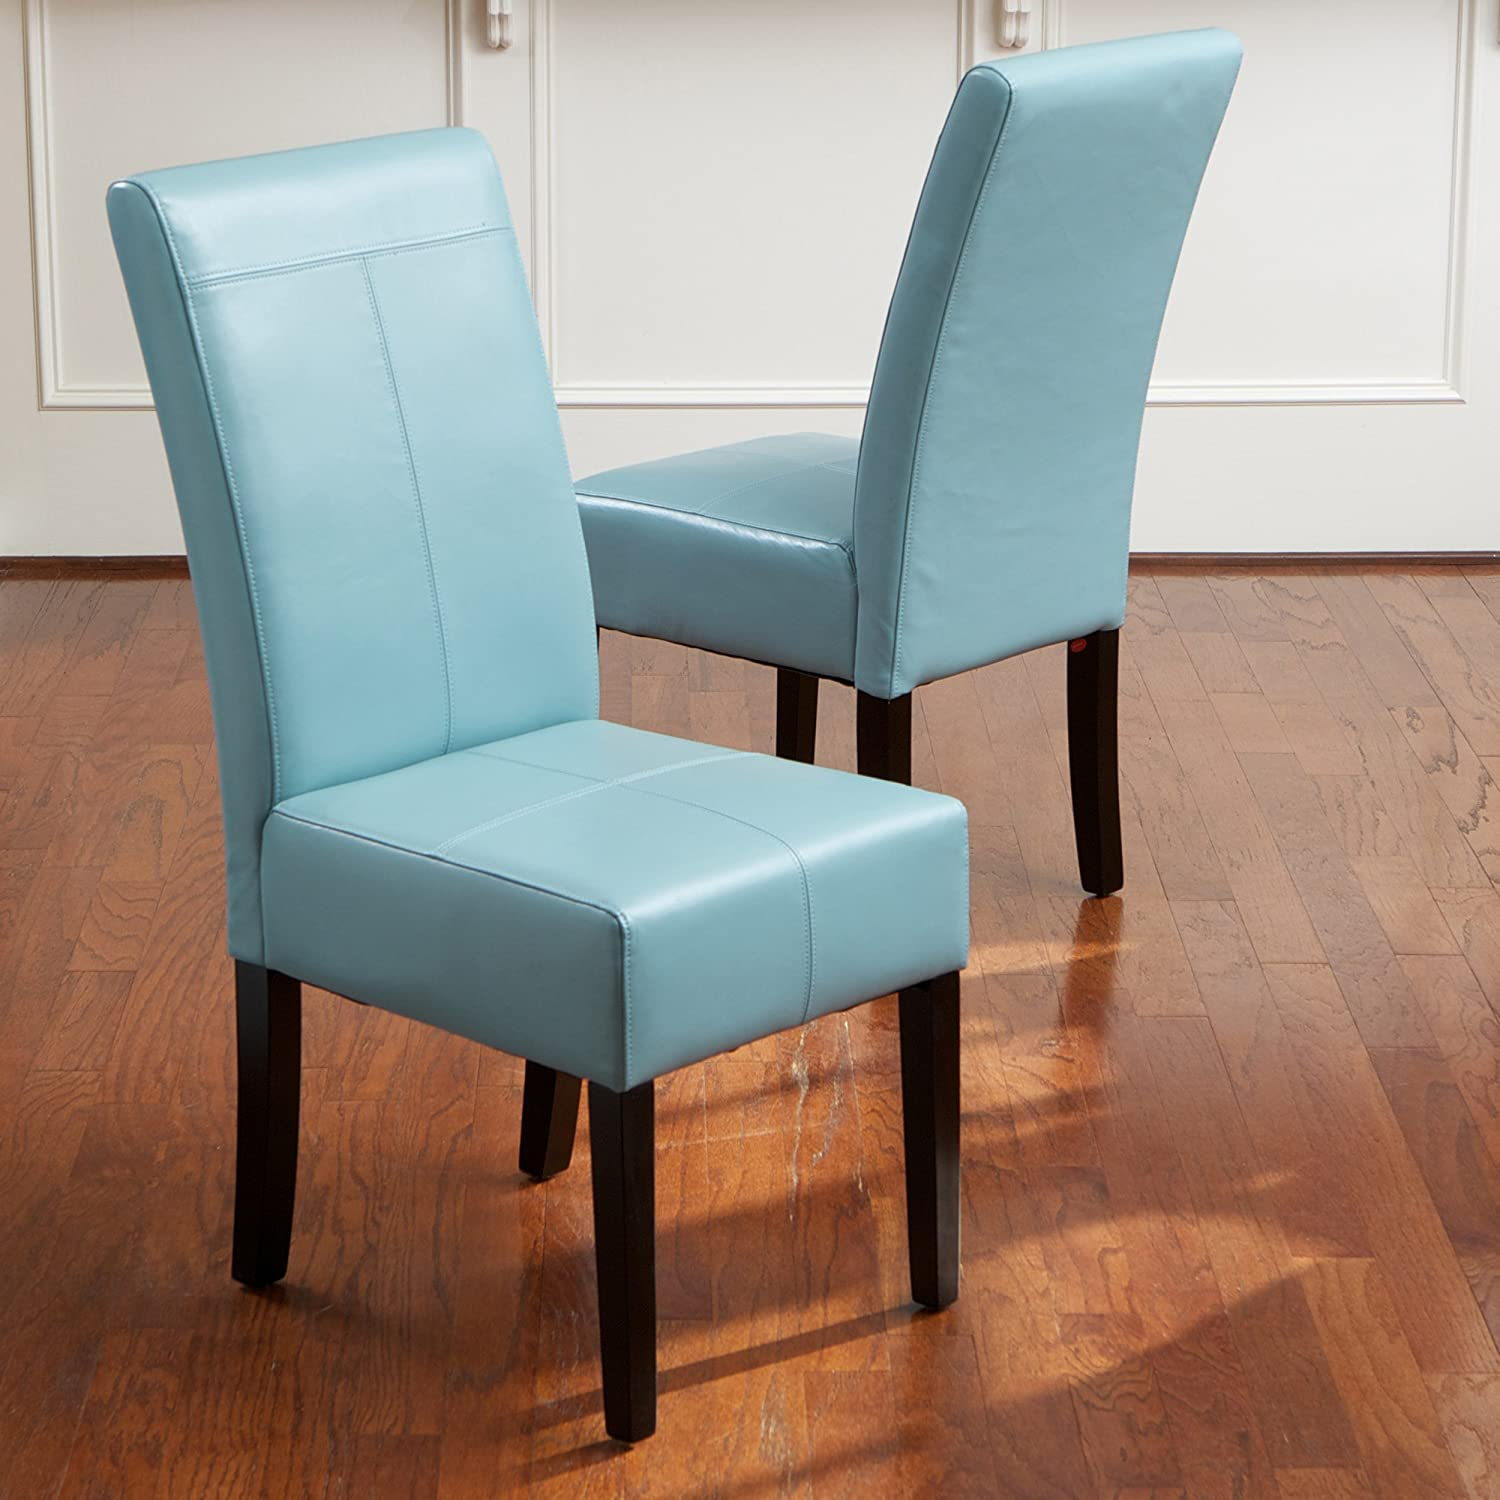 Amazon.com - Stella Teal Blue Leather Dining Chair (Set of 2) - Chairs